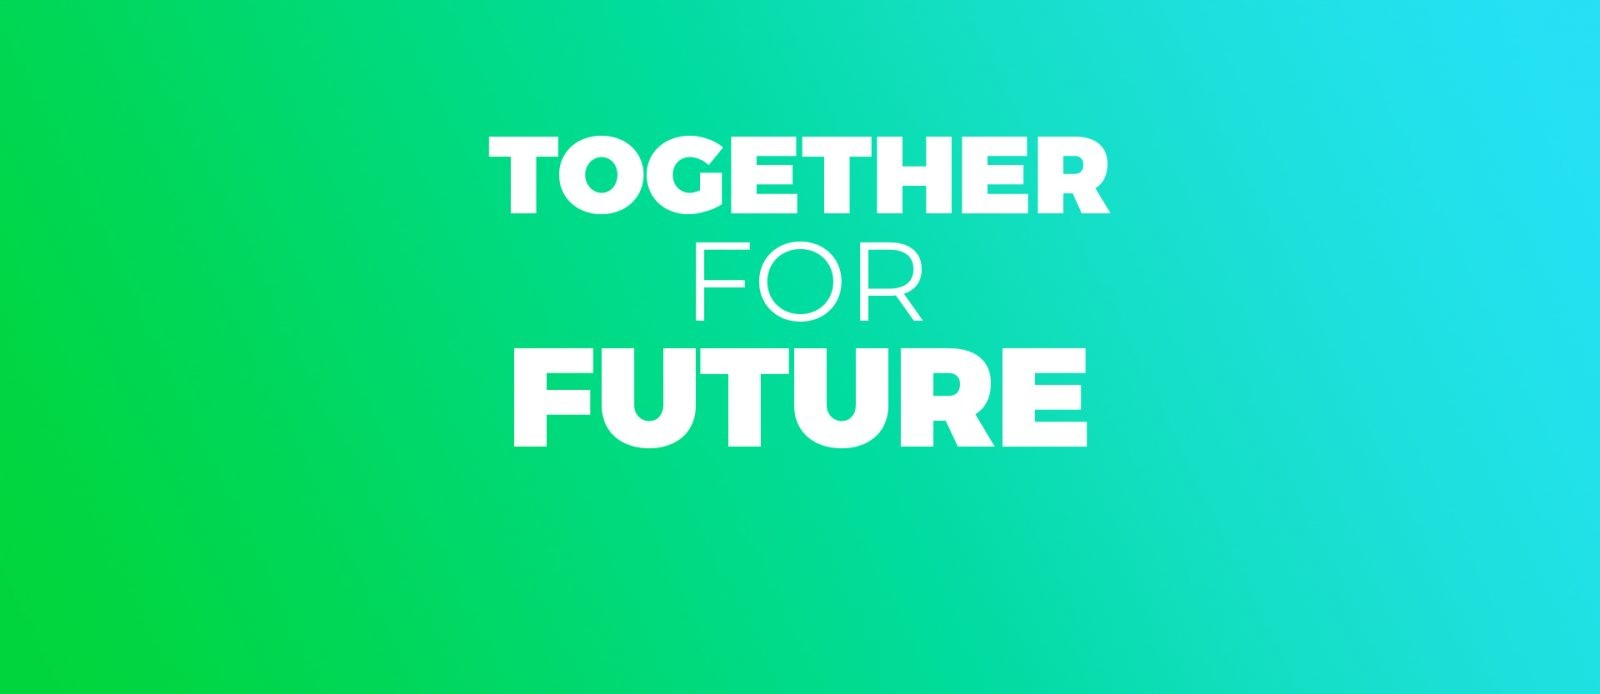 Together for Future